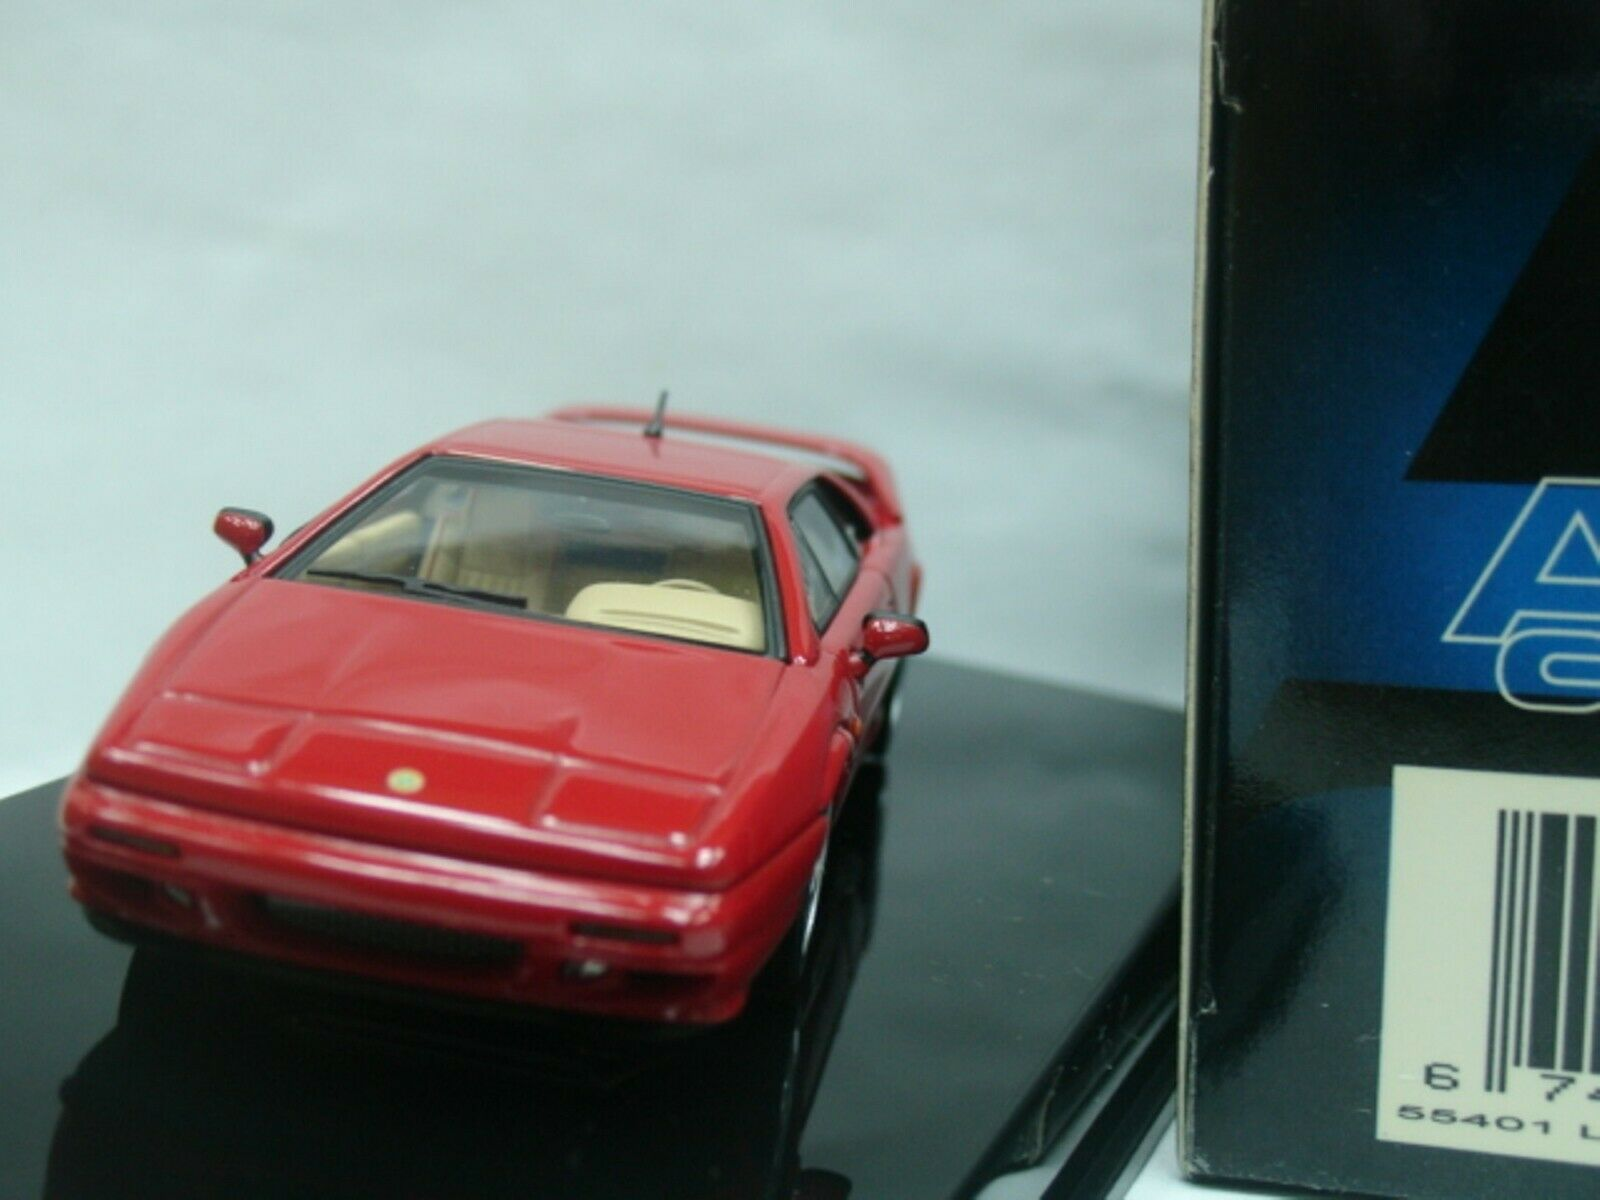 WOW EXTREMELY RARE Lotus Esprit V8 Turbo 350HP 1996 Red 1 43 Auto Art-Minichamps